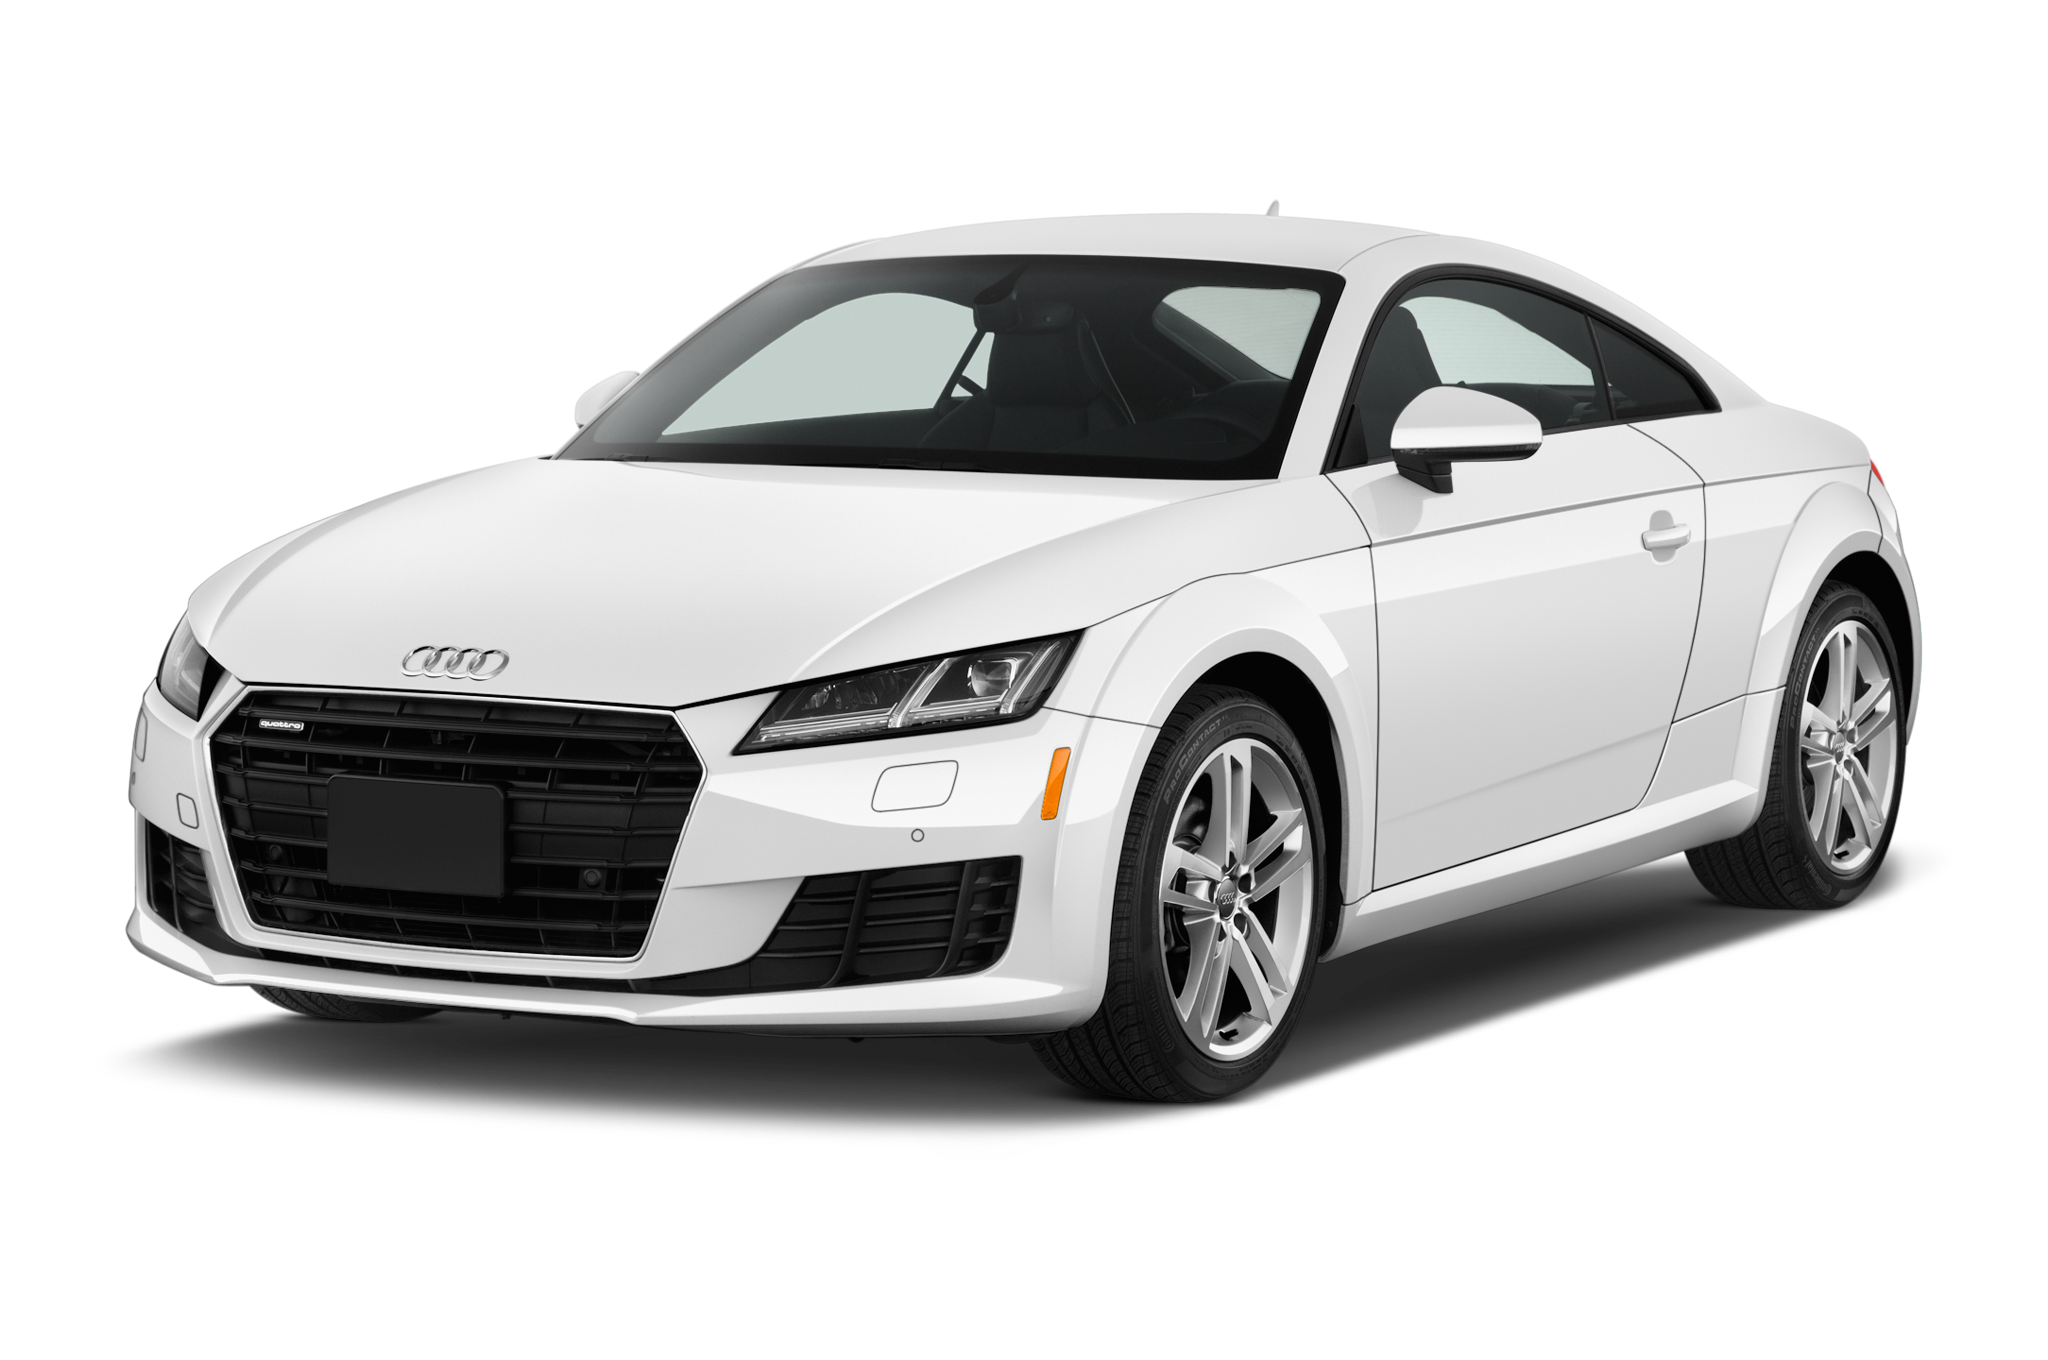 2017 audi tt coupe 2 0t quattro s tronic pricing msn autos. Black Bedroom Furniture Sets. Home Design Ideas